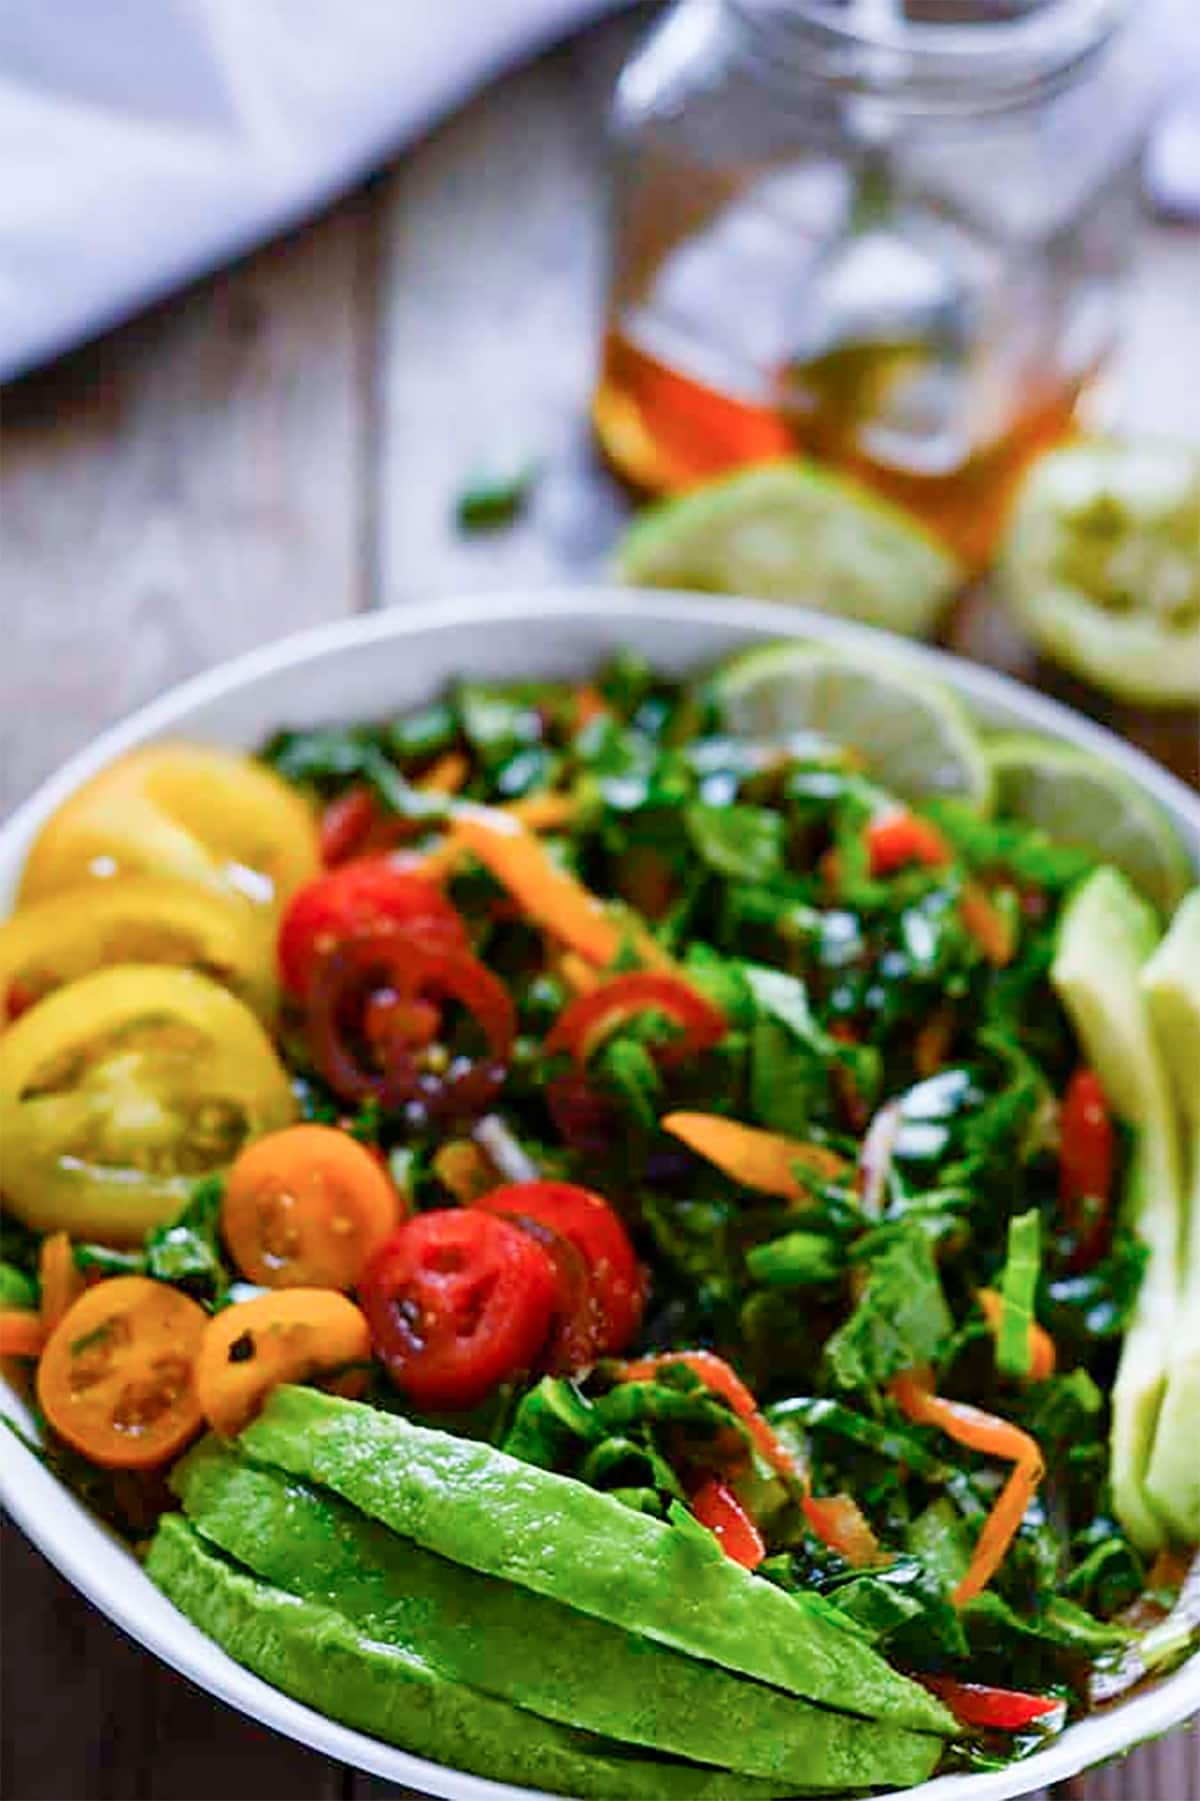 kale salad in a white bowl on a wooden background